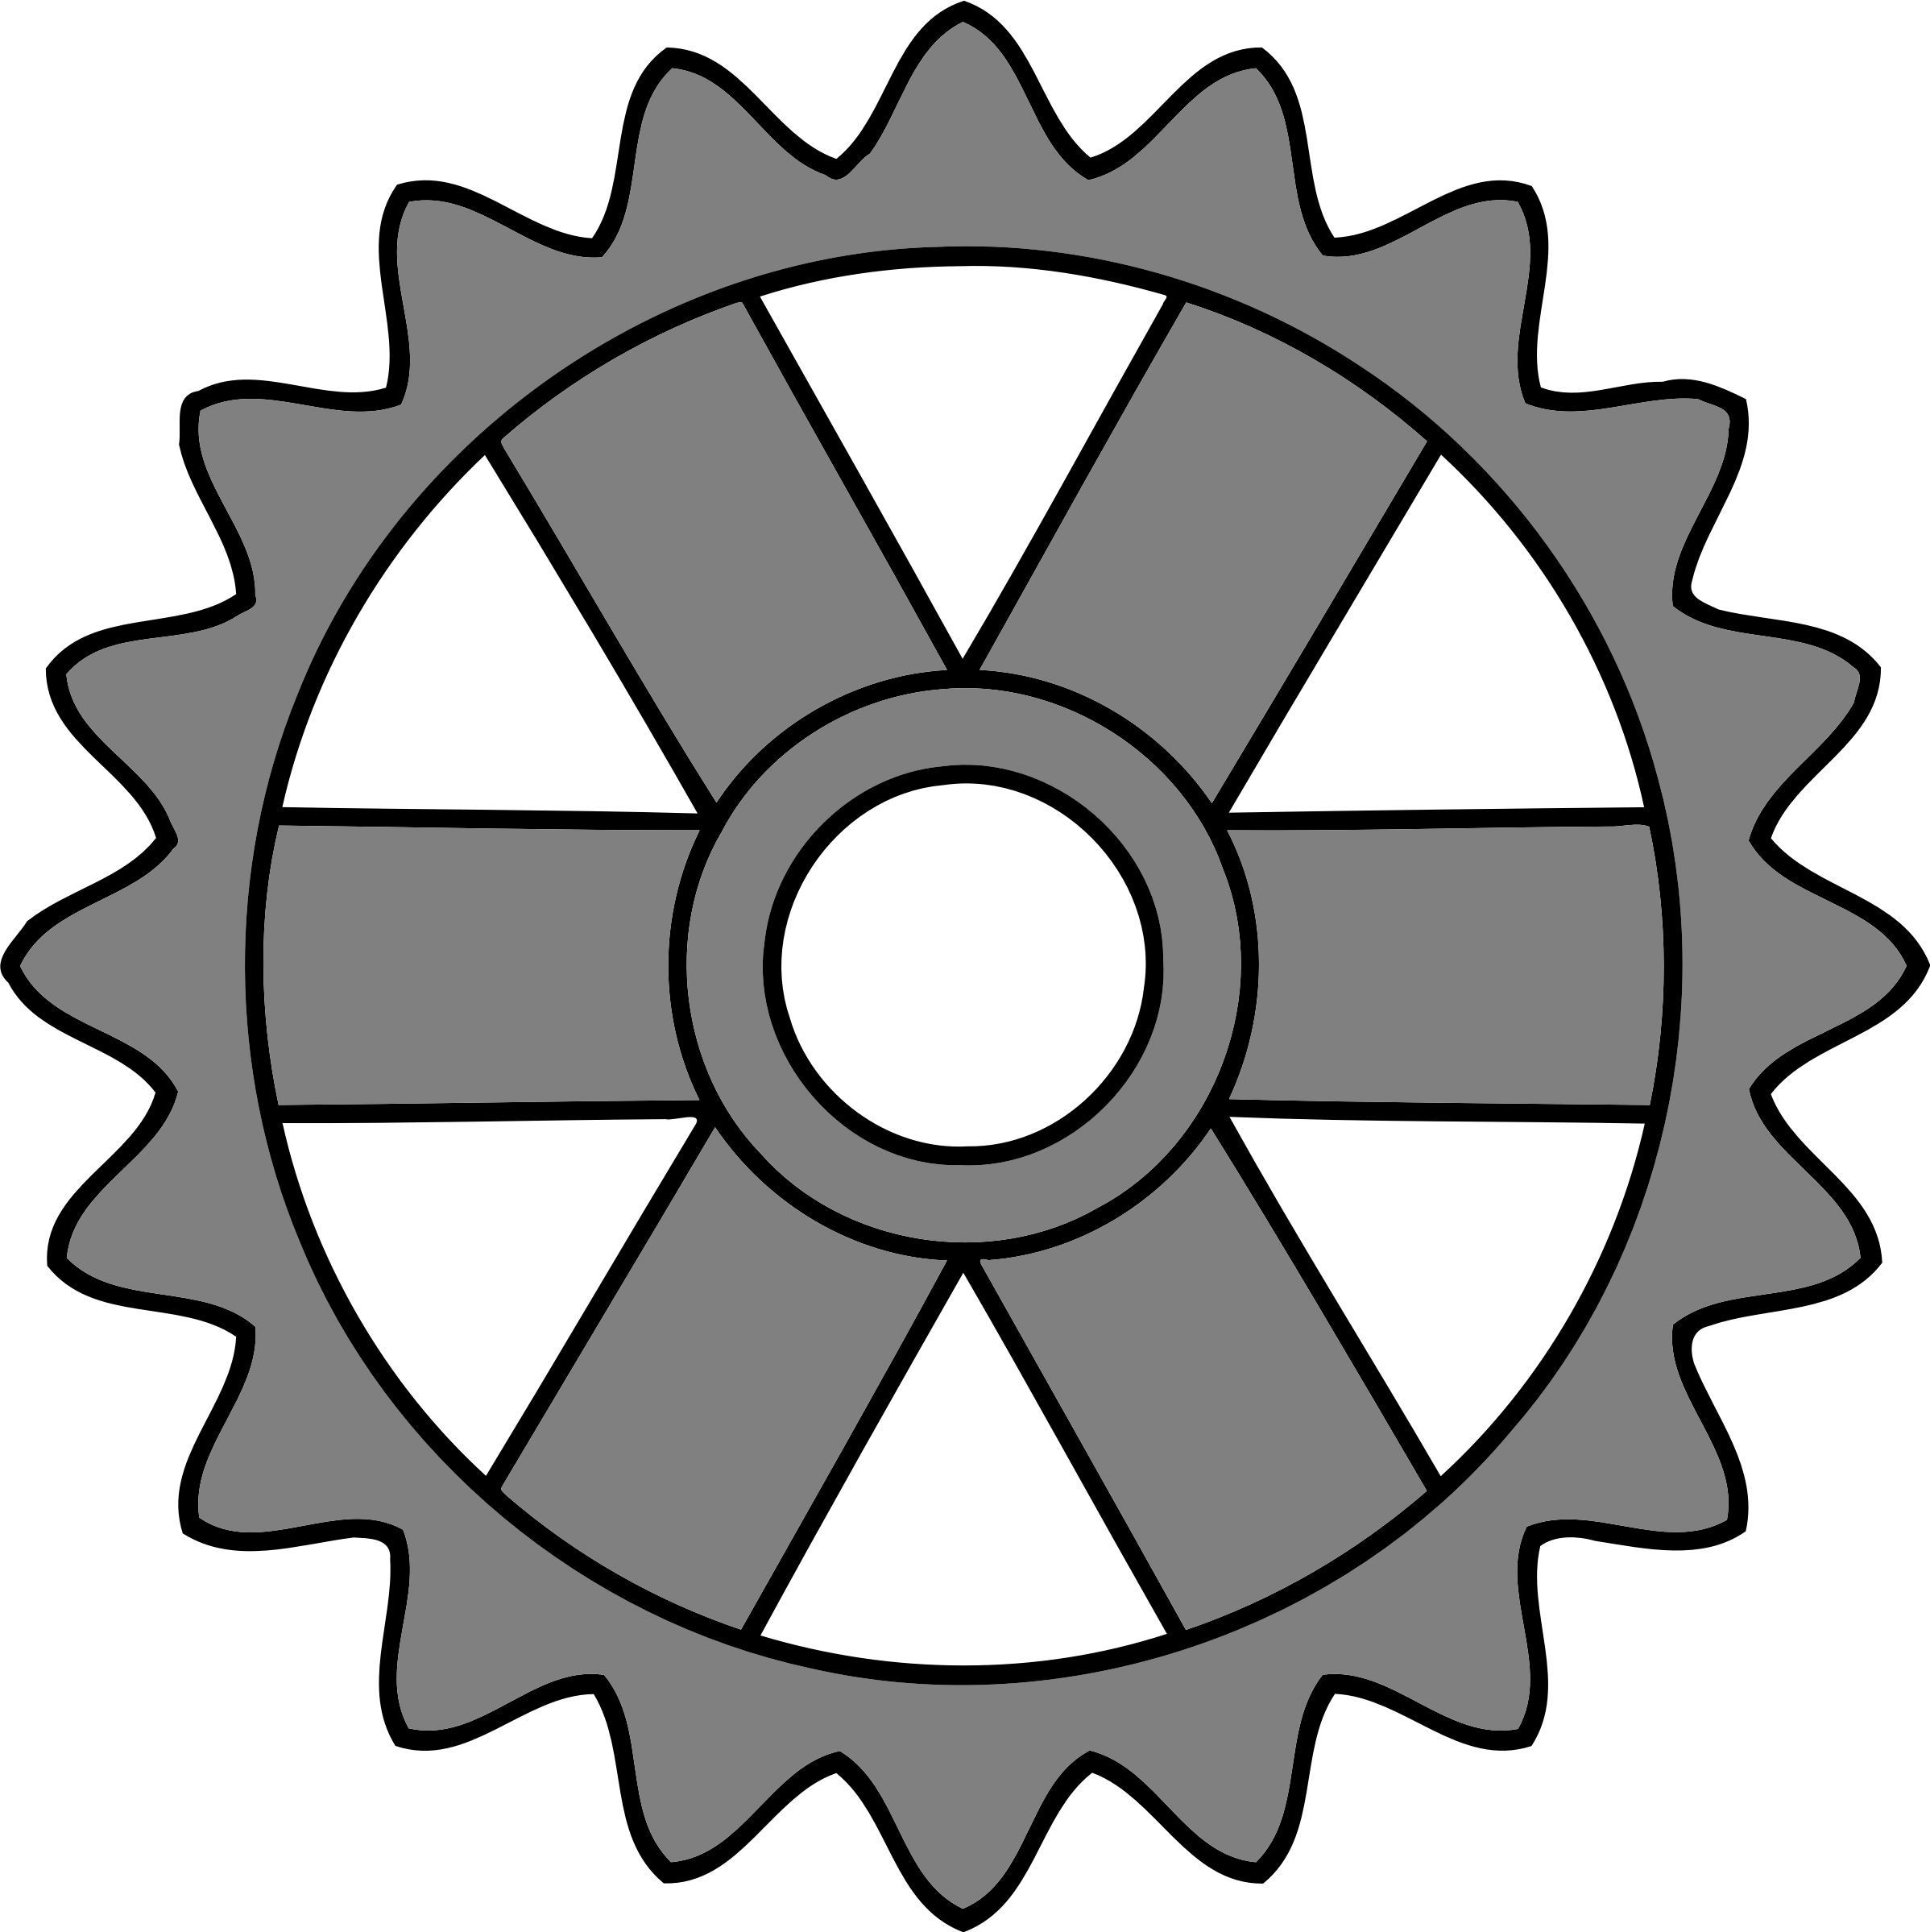 20-tooth gear with rectangular spokes by Firkin